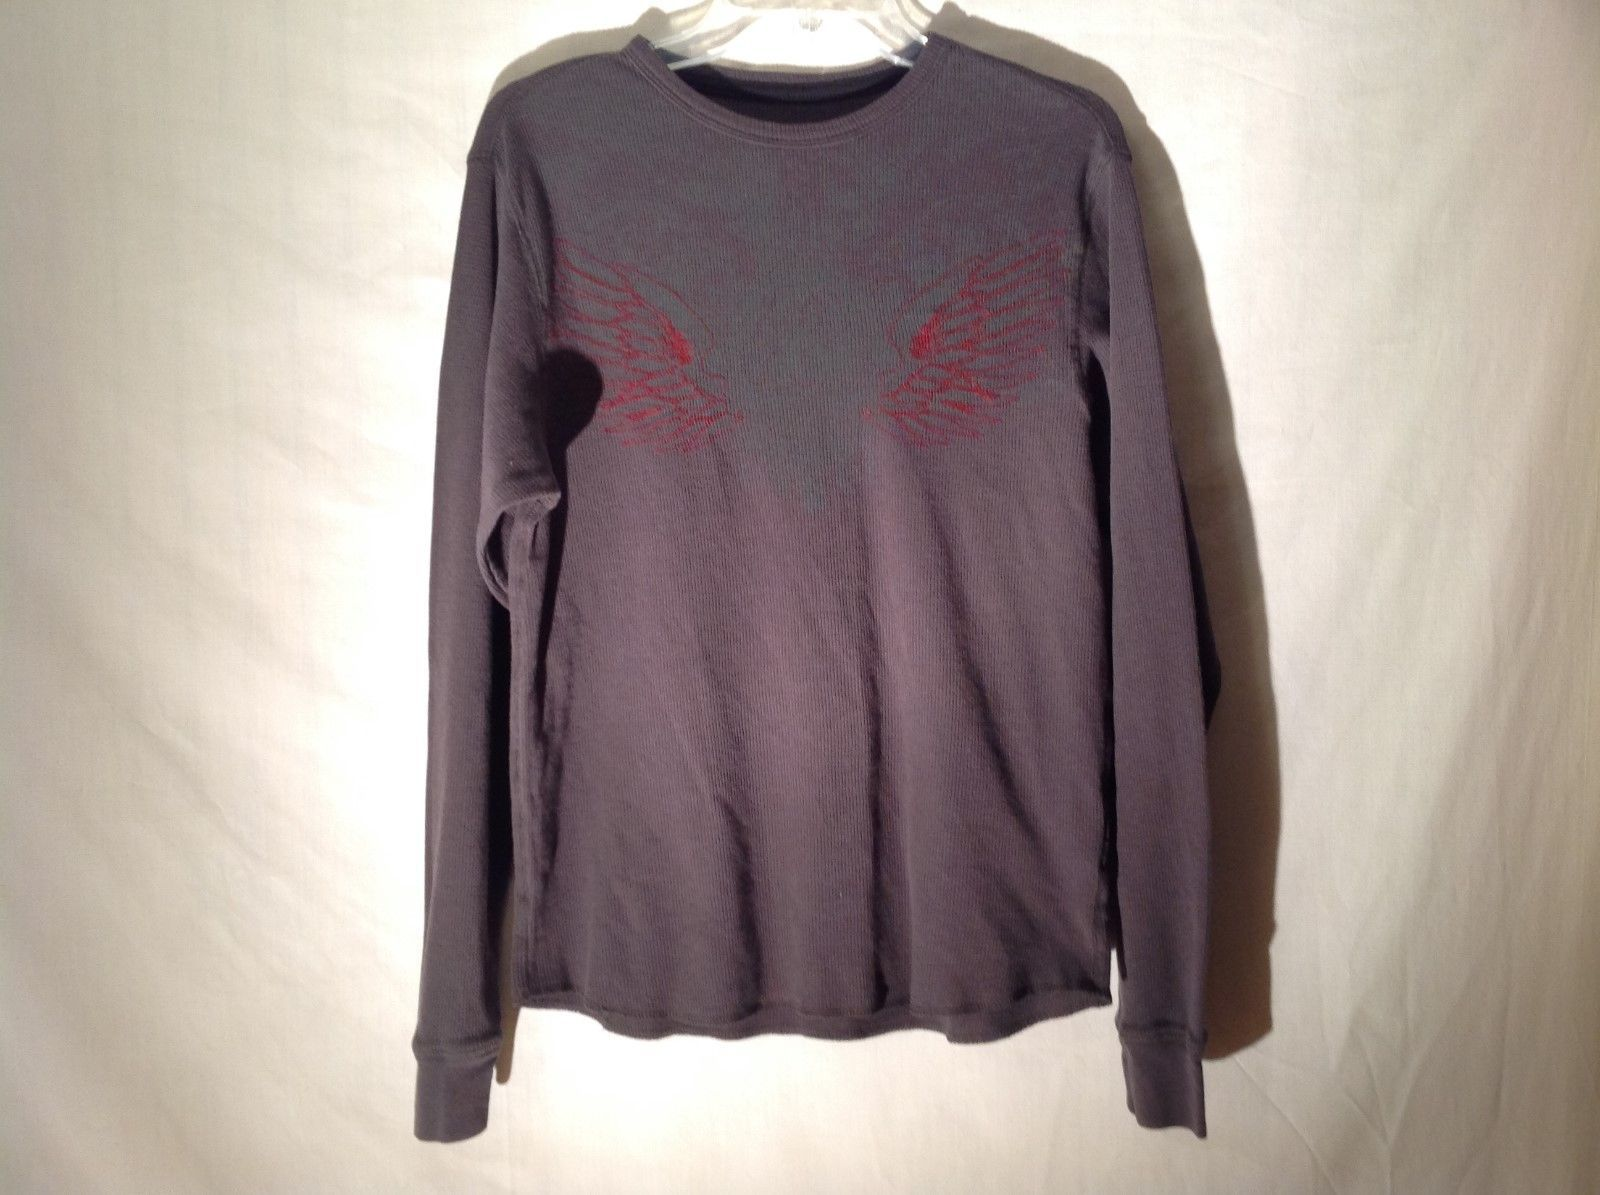 J. Ferrar Dark Gray Long Sleeve Red Embroidered Shirt Sz M